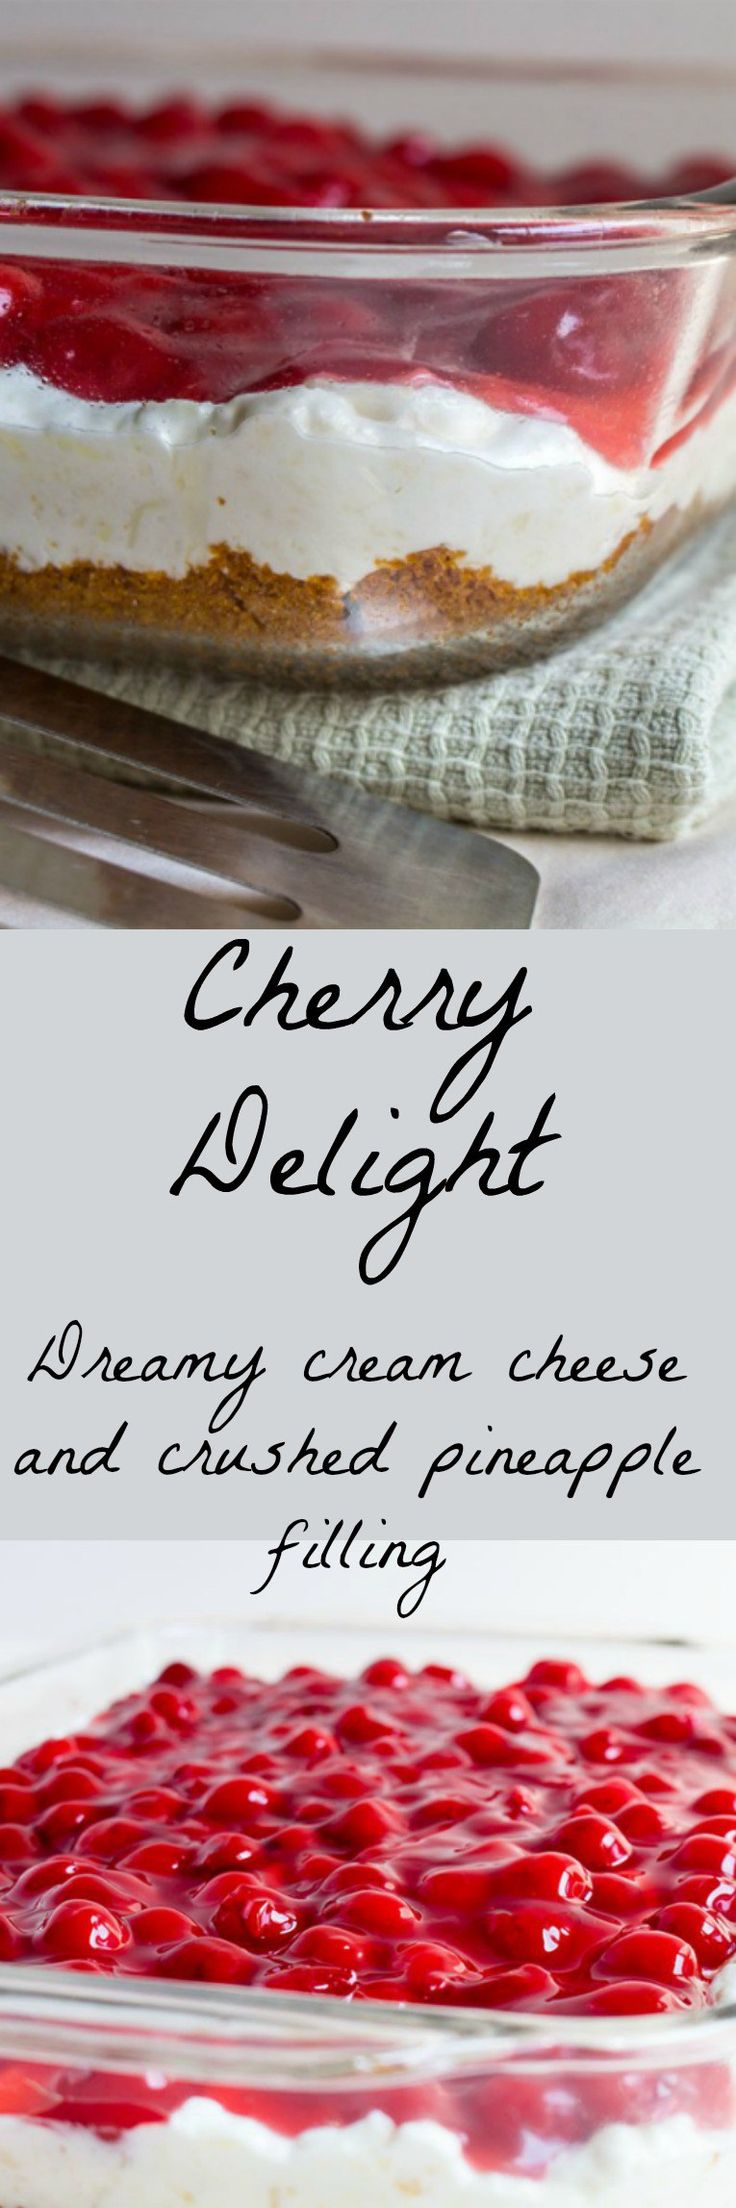 Cherry Delight: Quick, light and creamy pineapple and cherry dessert recipe.